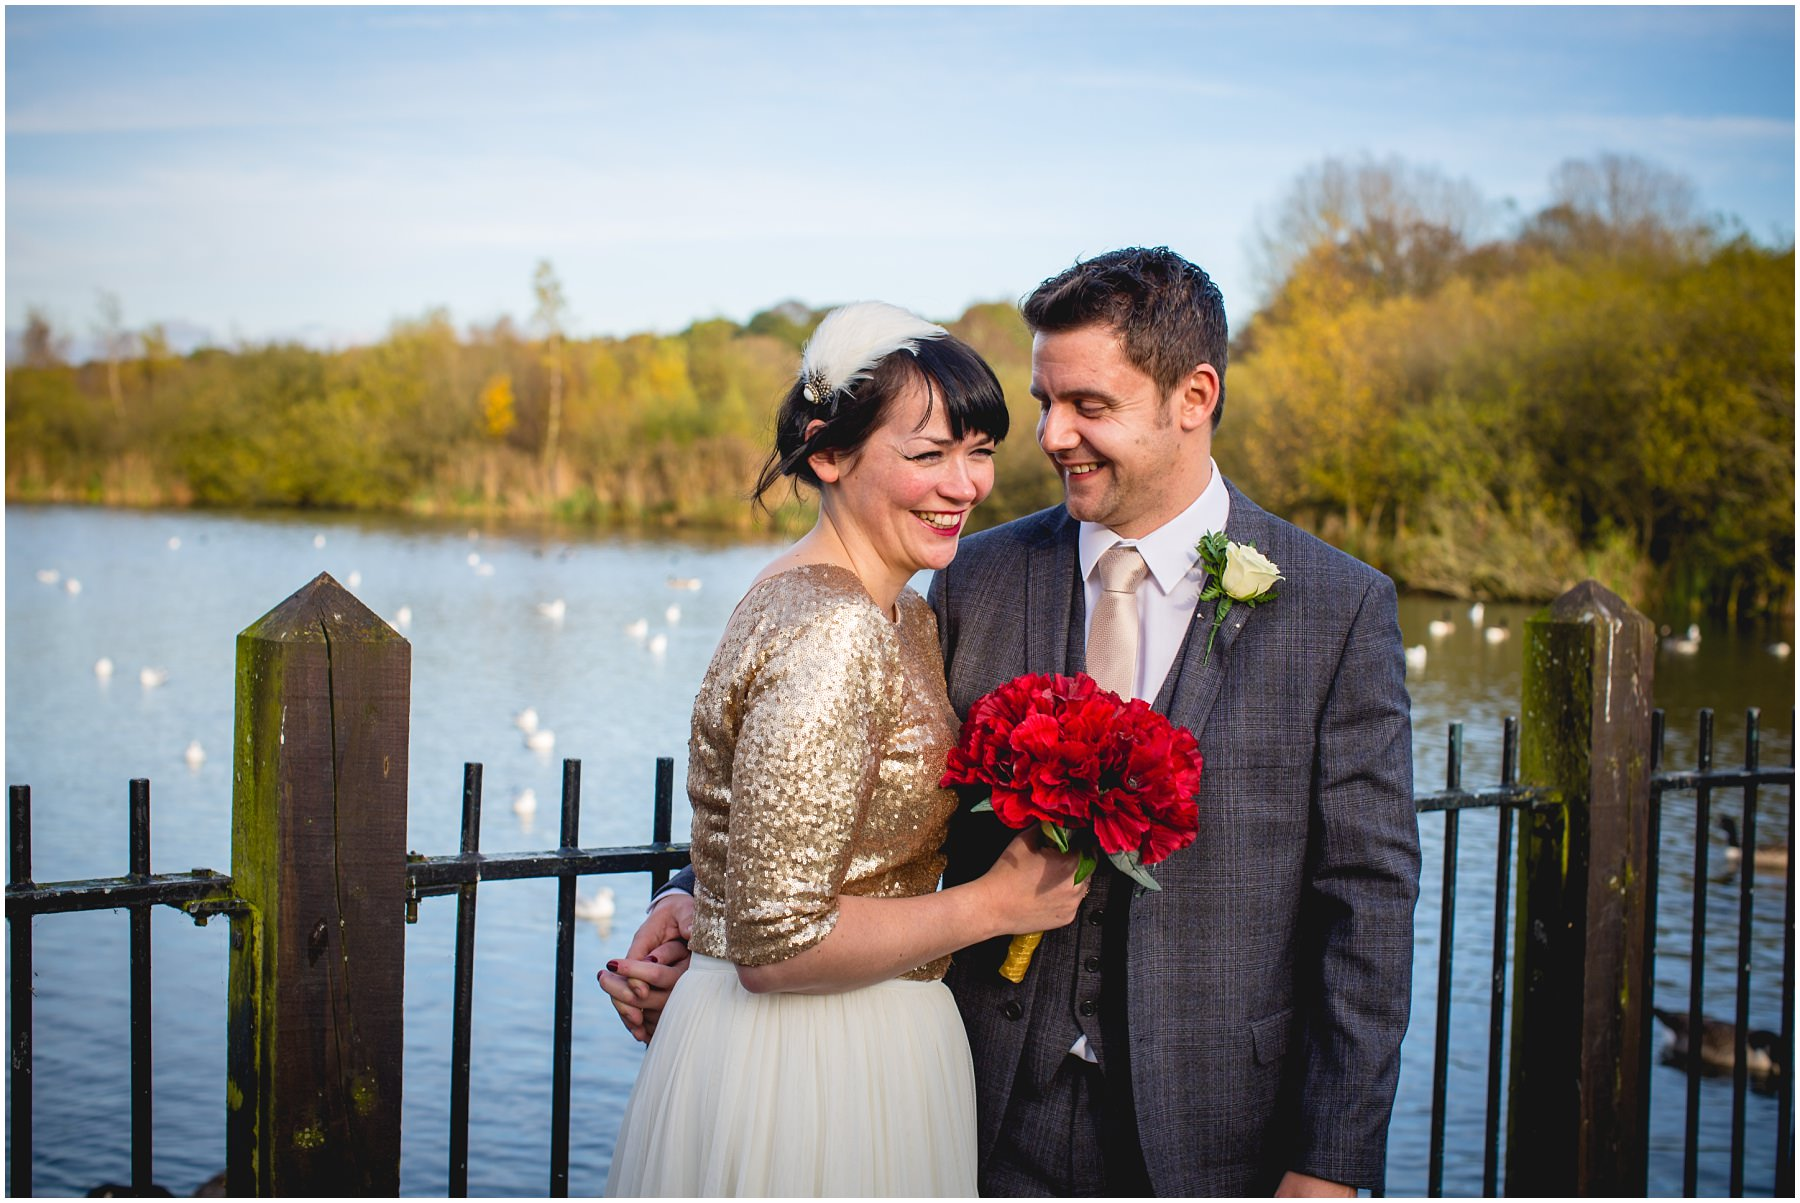 Newly wed couple have a laugh at the park